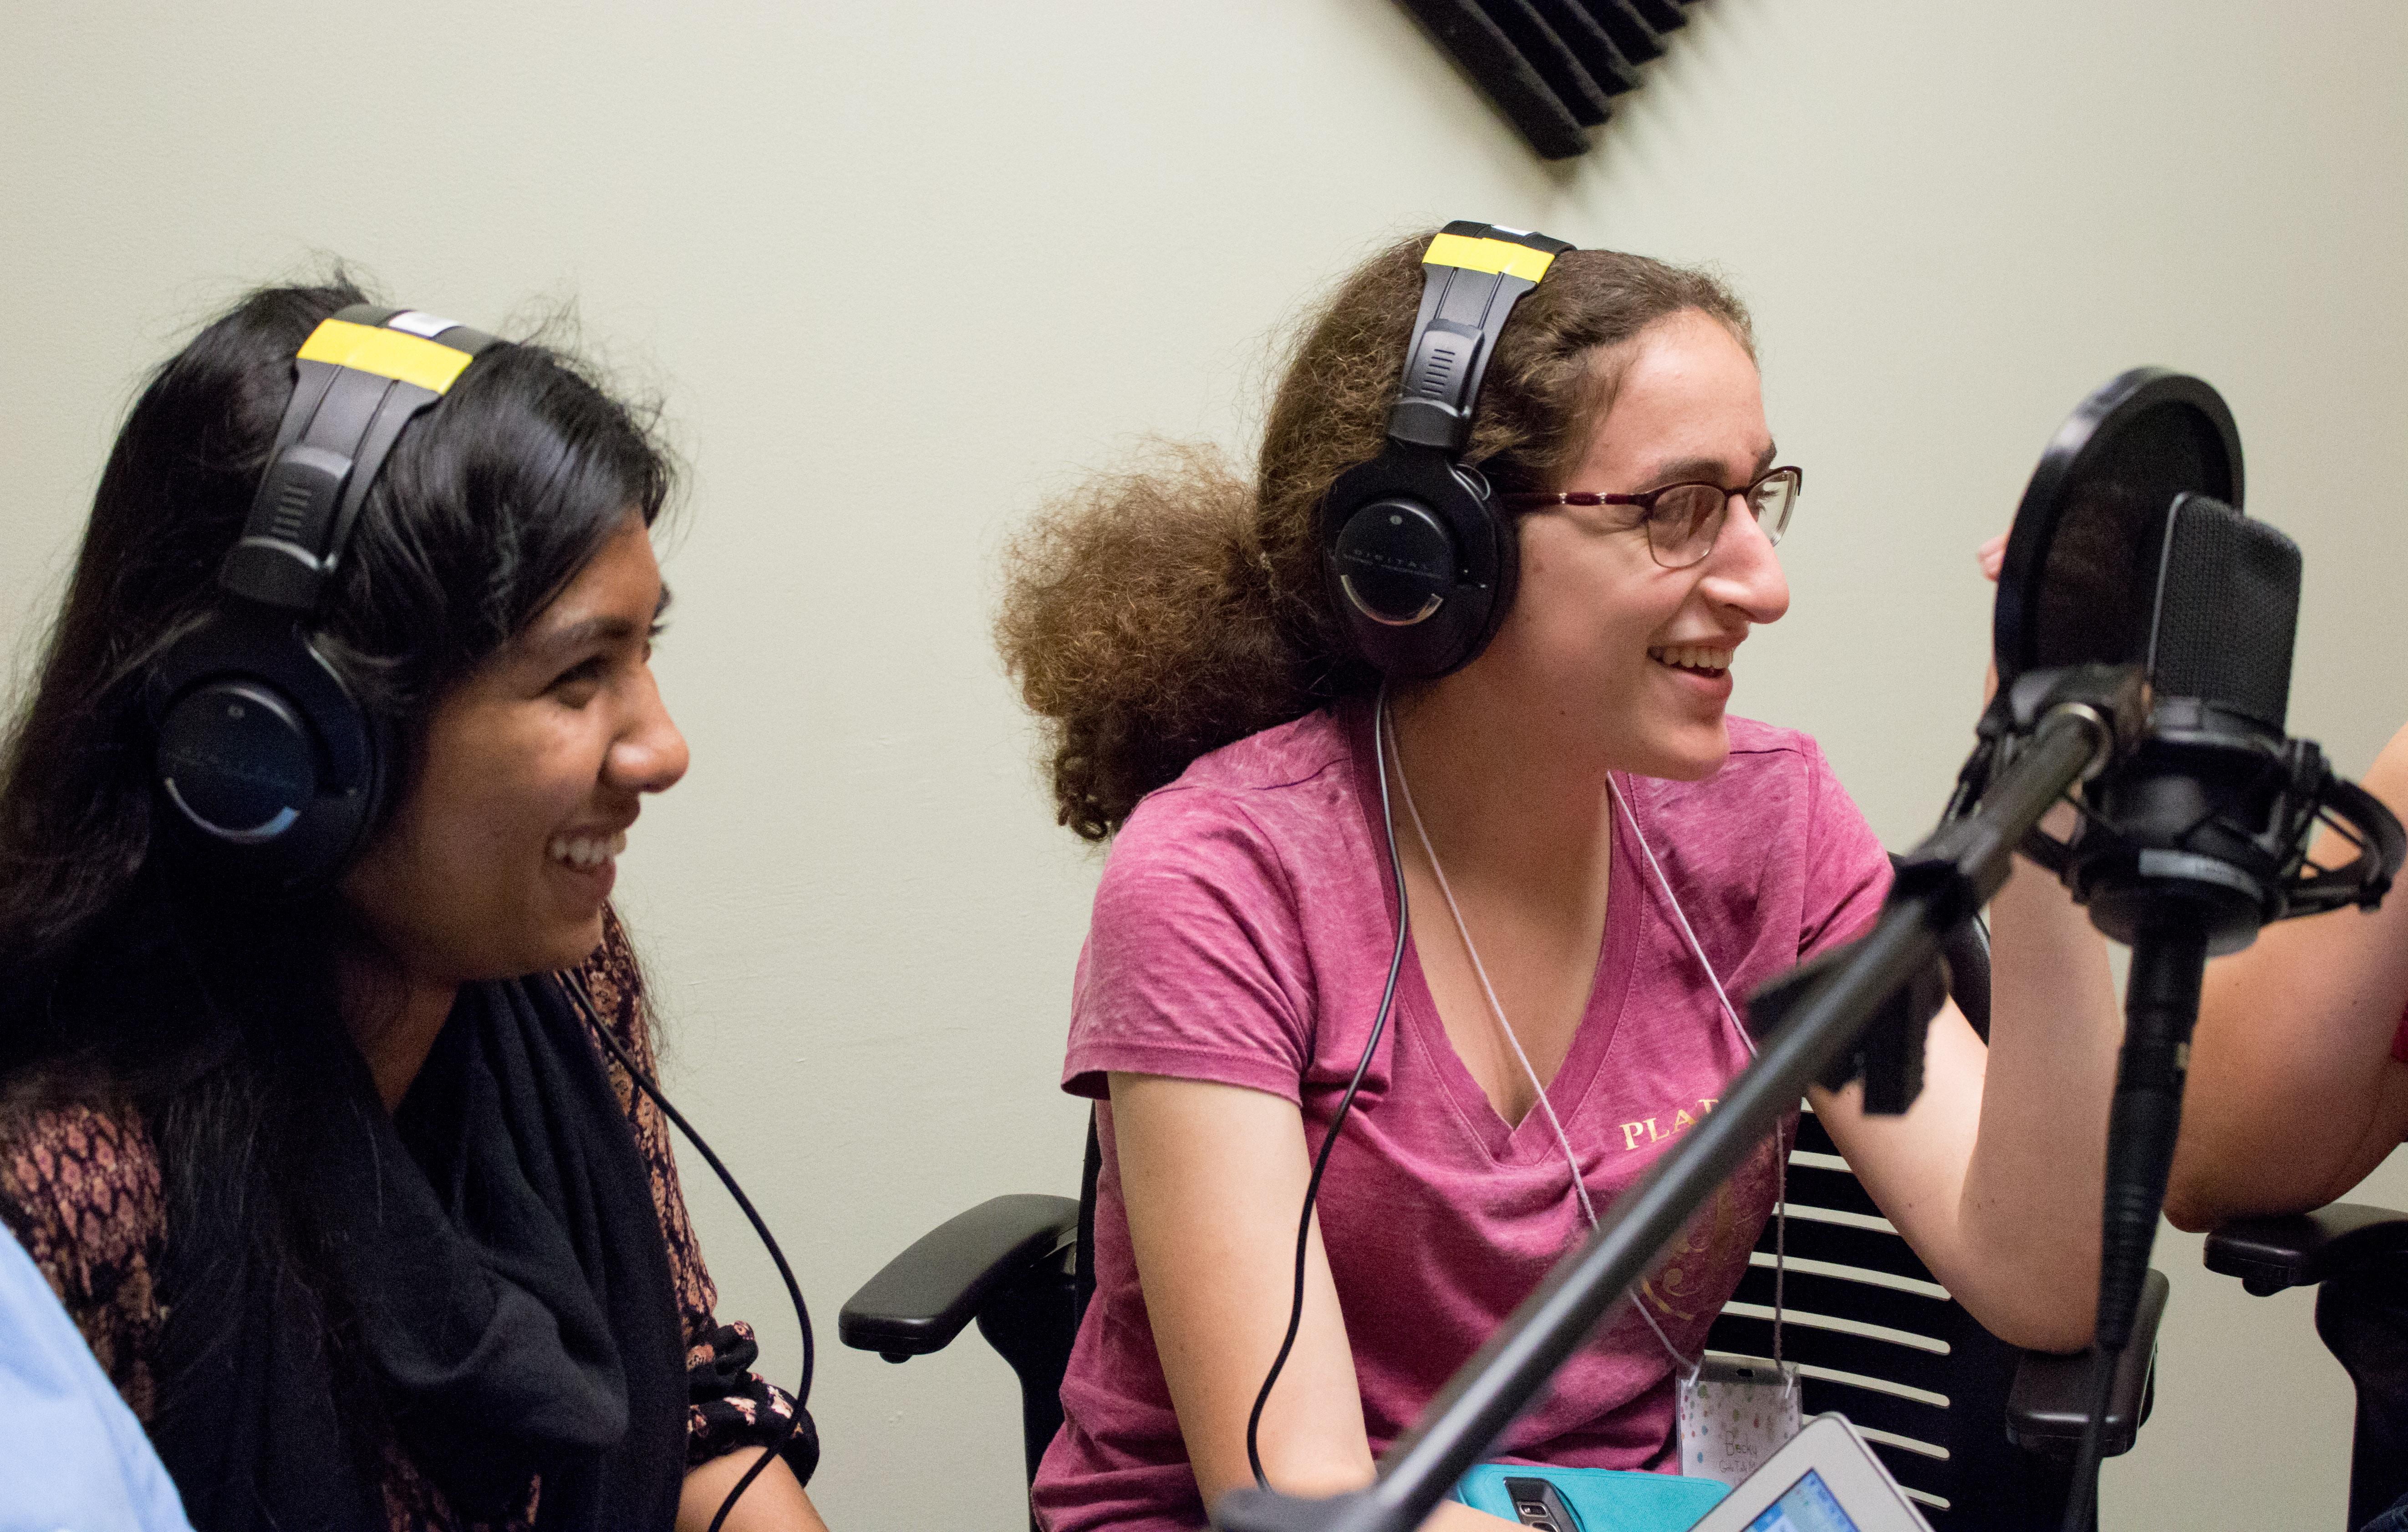 Two young women in the Girls talk Math program wear headphones and talk into a microphone.